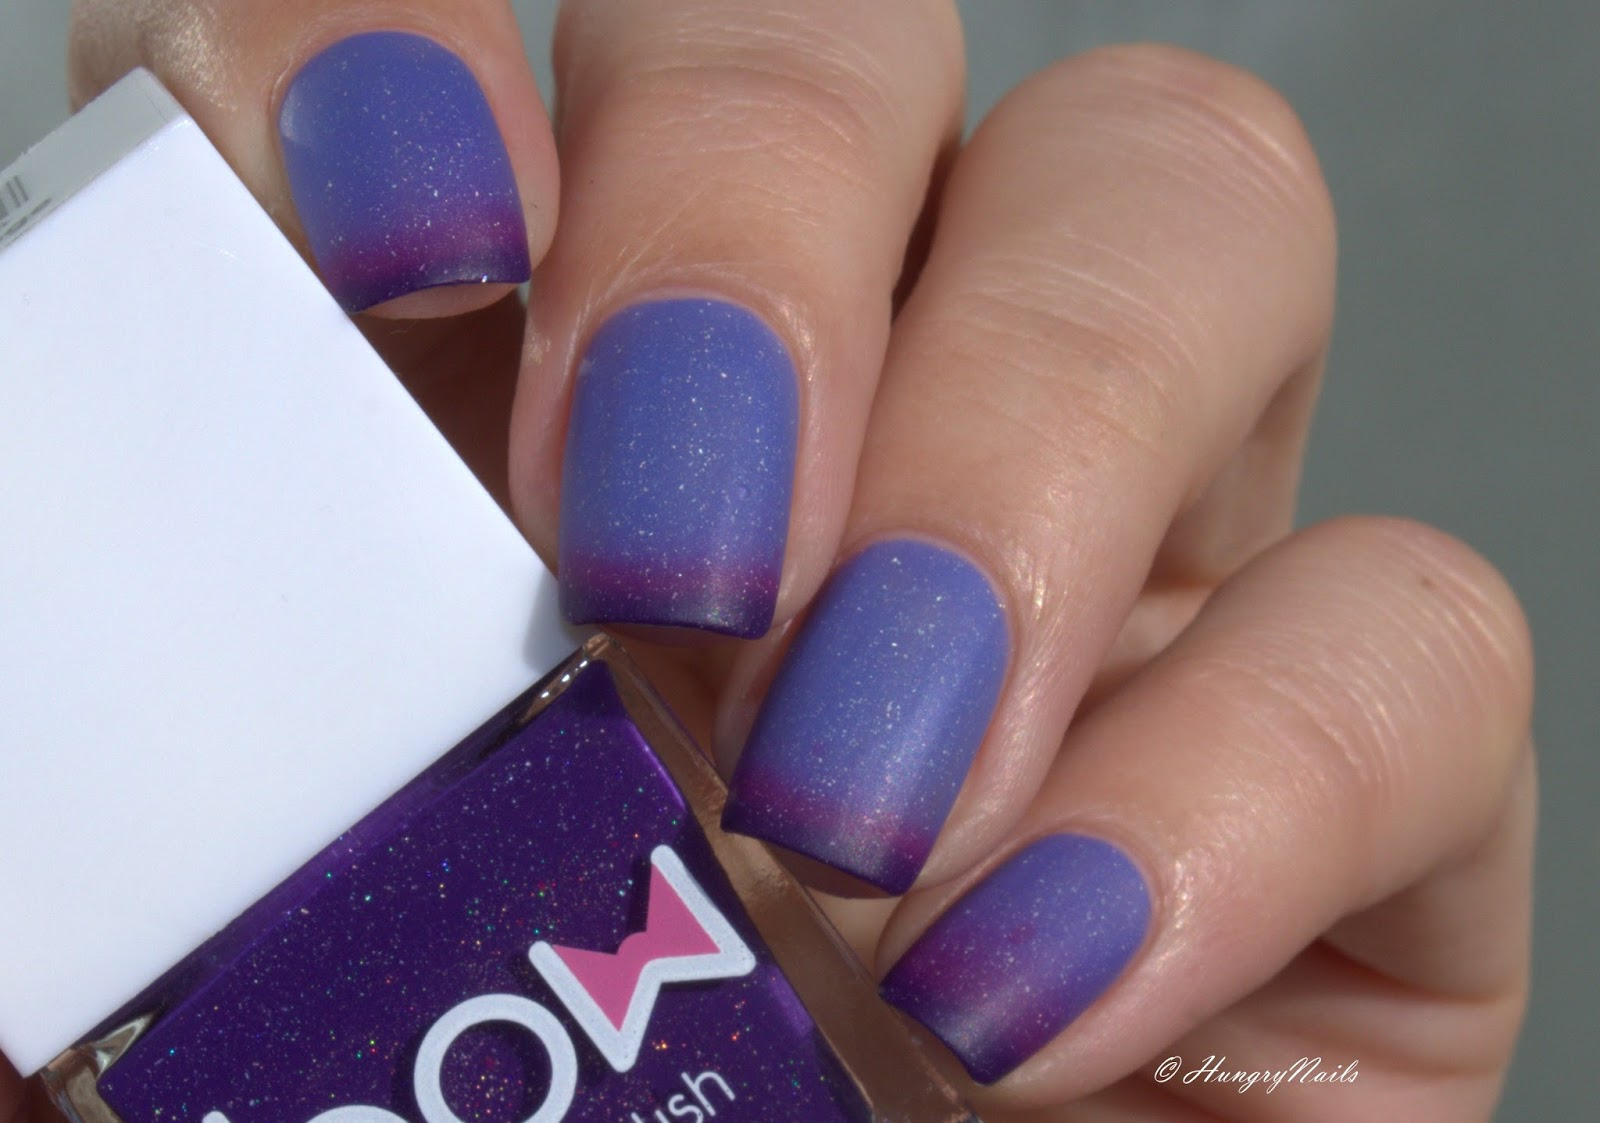 Bow Nail Polish | Wind of Change - HungryNails Blog | Die bunte Welt ...